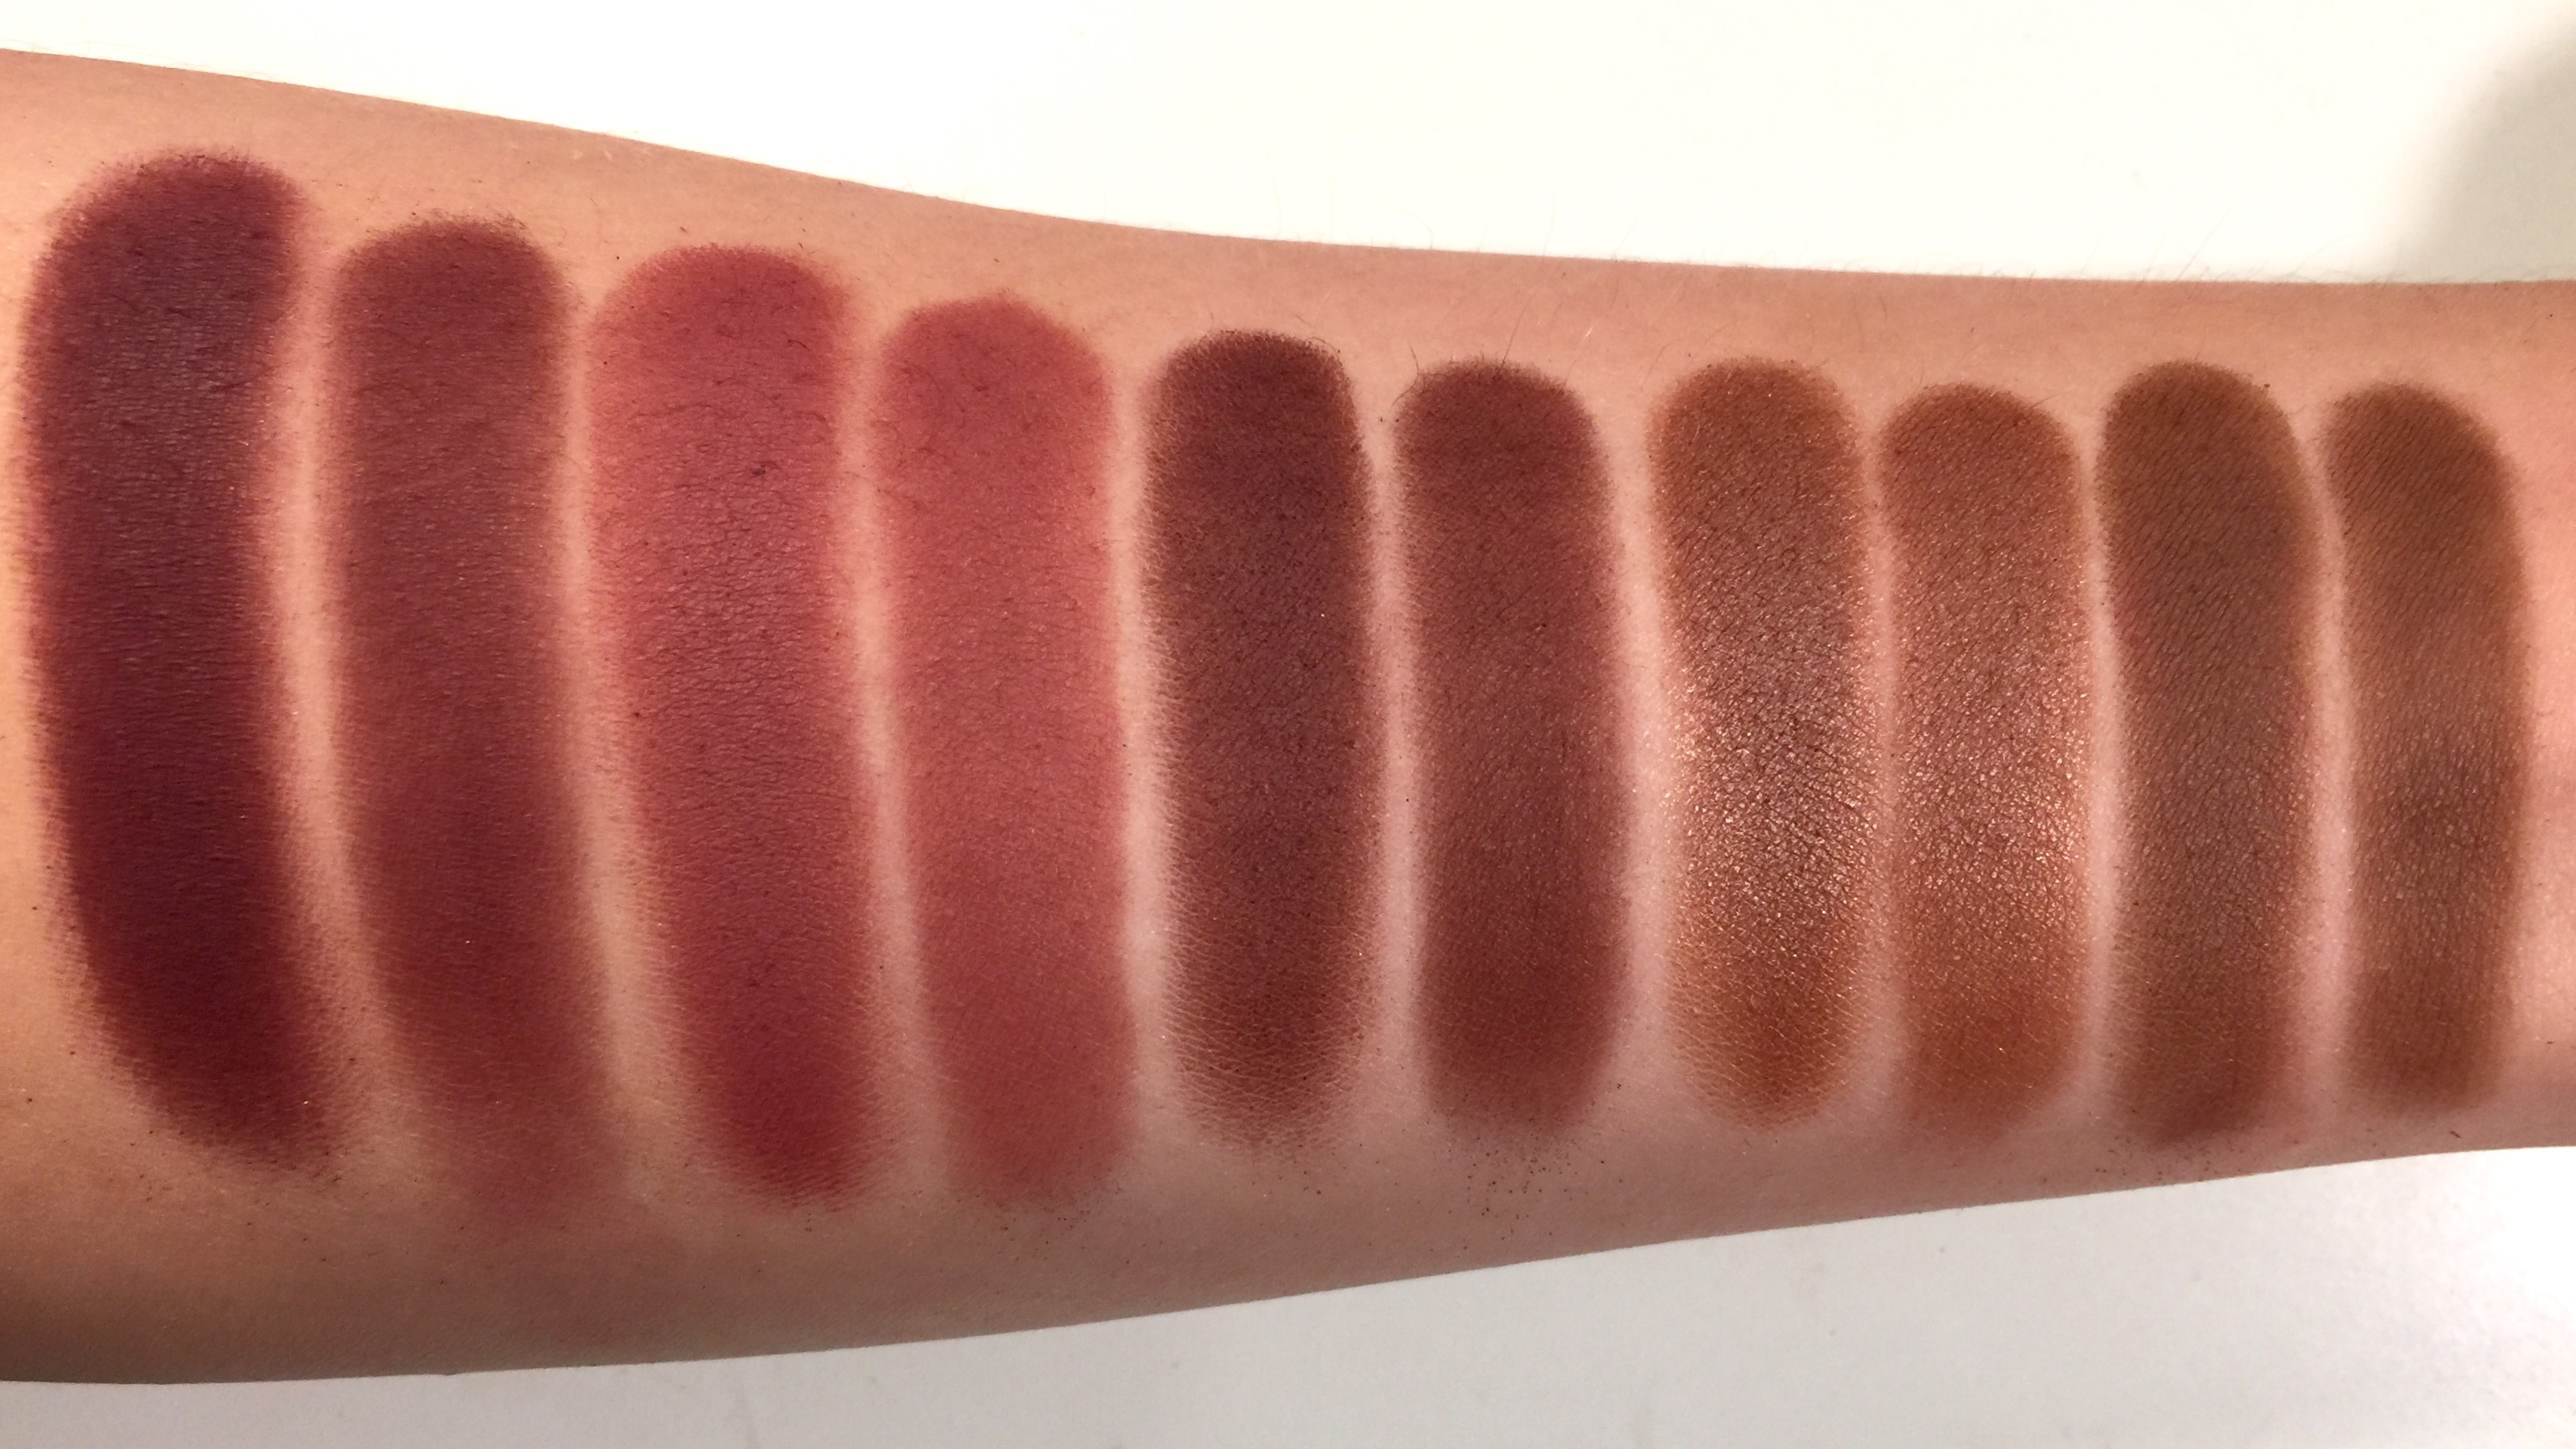 10 Color Blush Palette by Coastal Scents #16